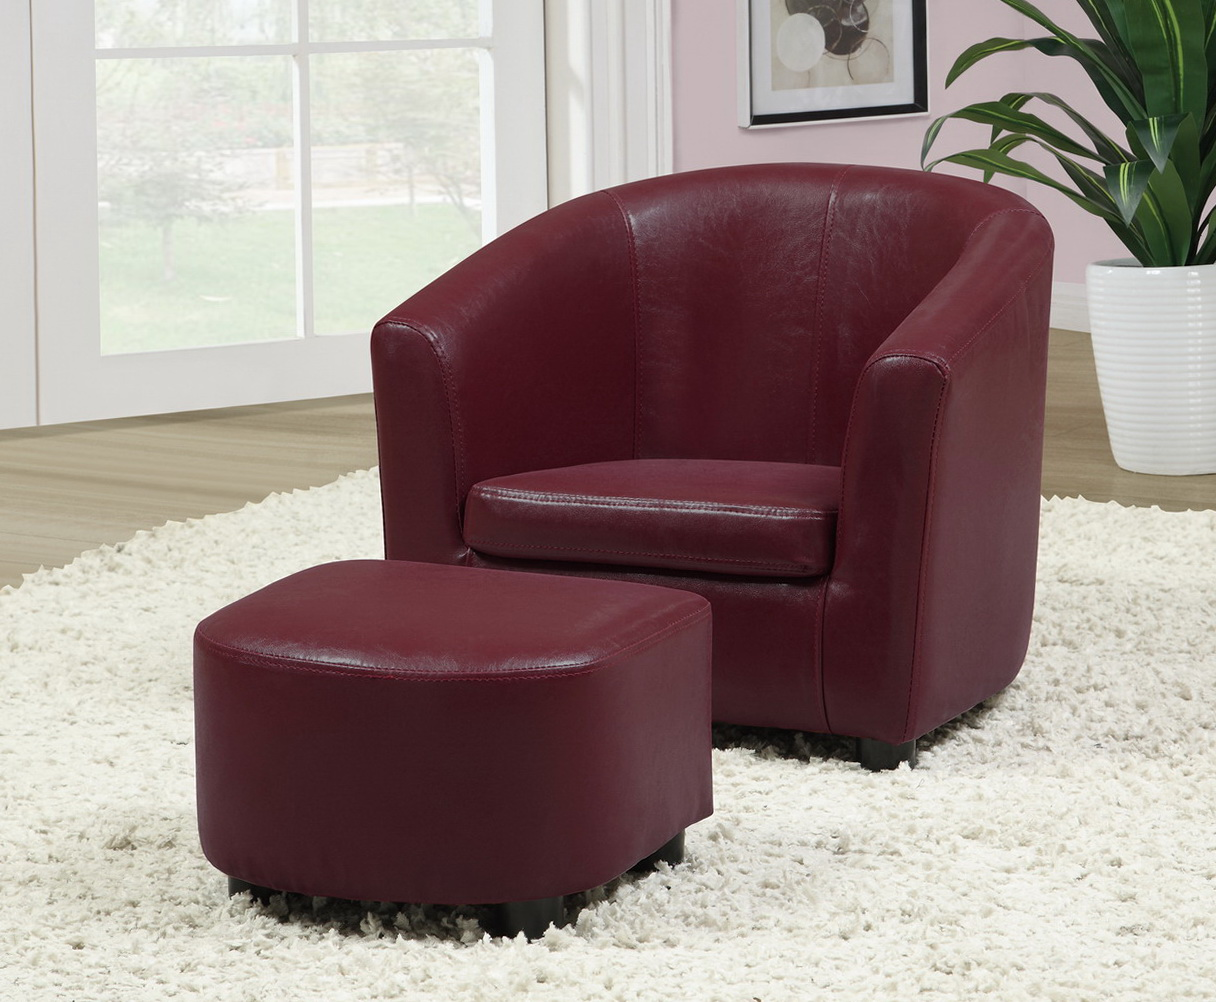 Red Accent Chair With Ottoman Home Design Ideas